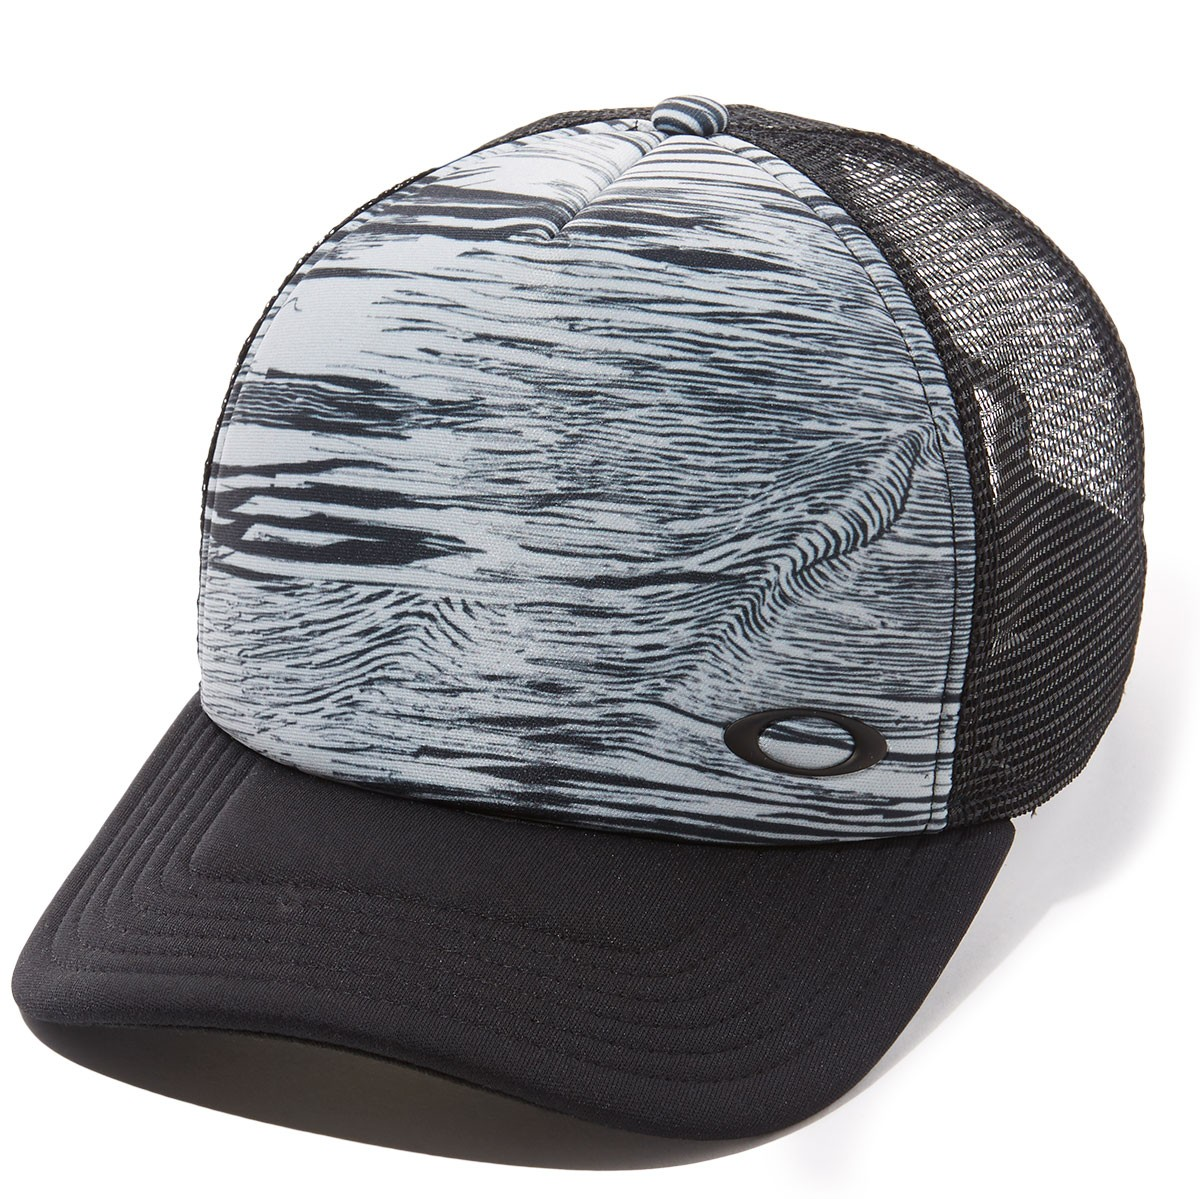 cdef9a2127ed9 Oakley Mesh Sublimated Trucker Hat - Blackout